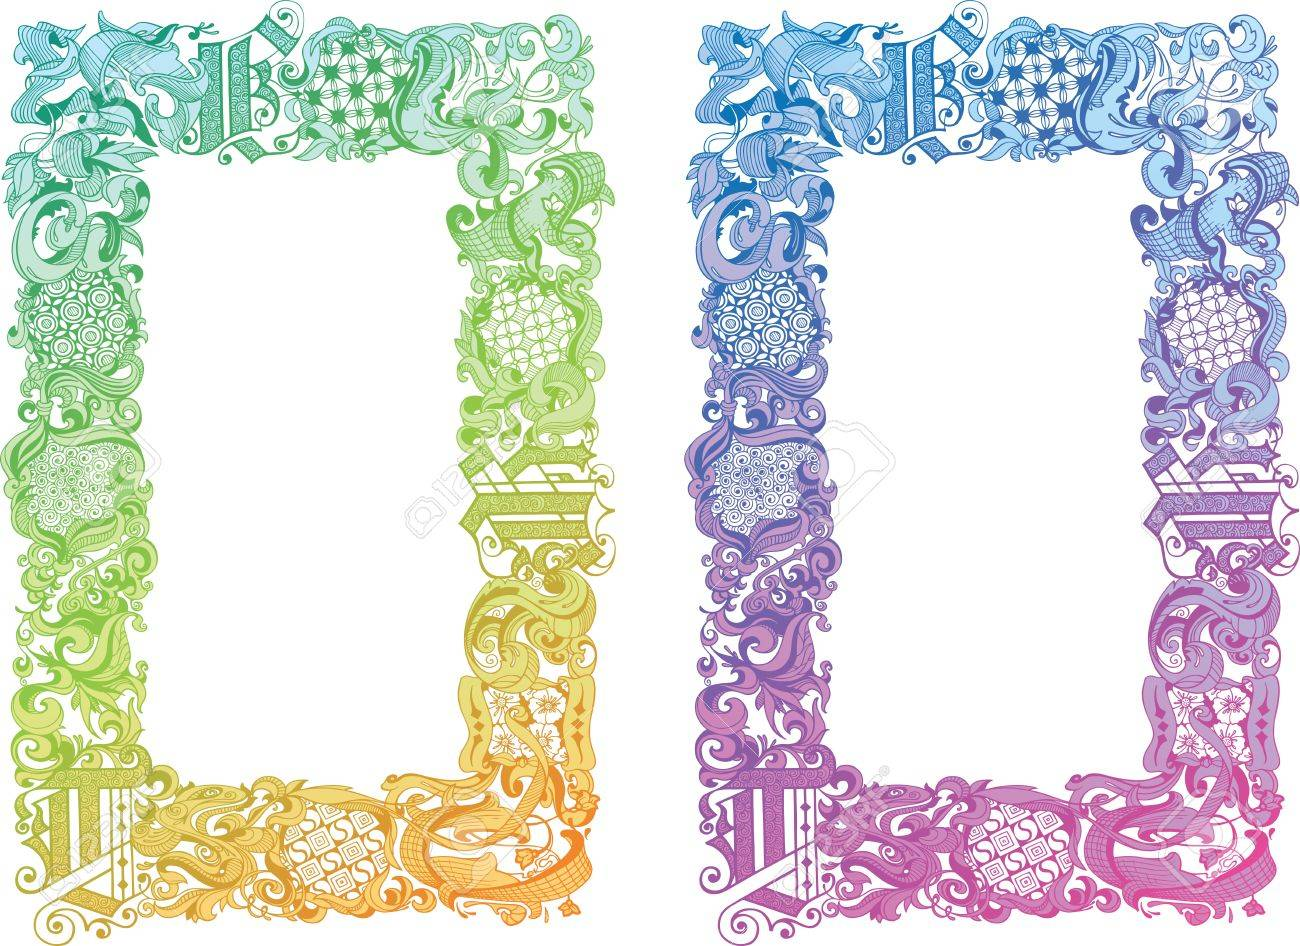 Two color schemes of the calligraphic boarder with the old type elements and the floral motifs - 14320926